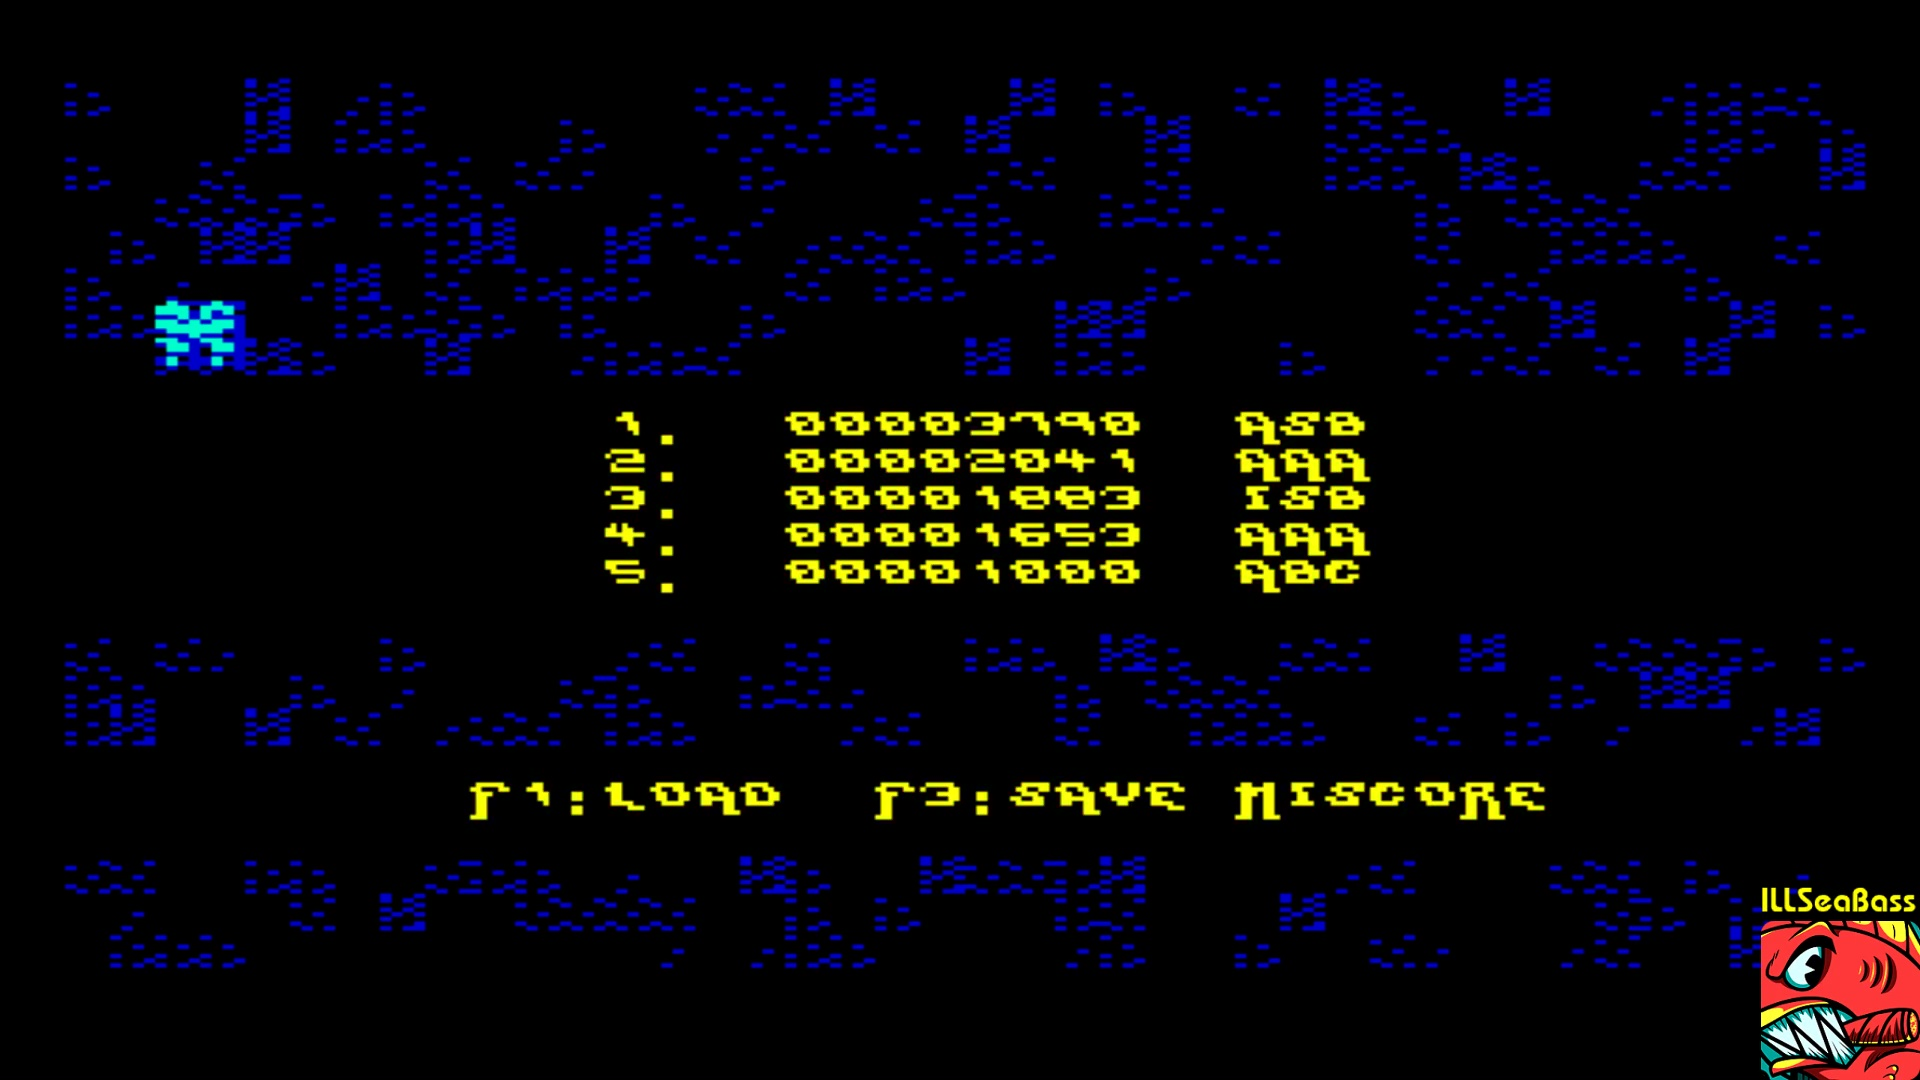 ILLSeaBass: Darkipede (Commodore 64 Emulated) 3,790 points on 2018-01-28 22:06:05